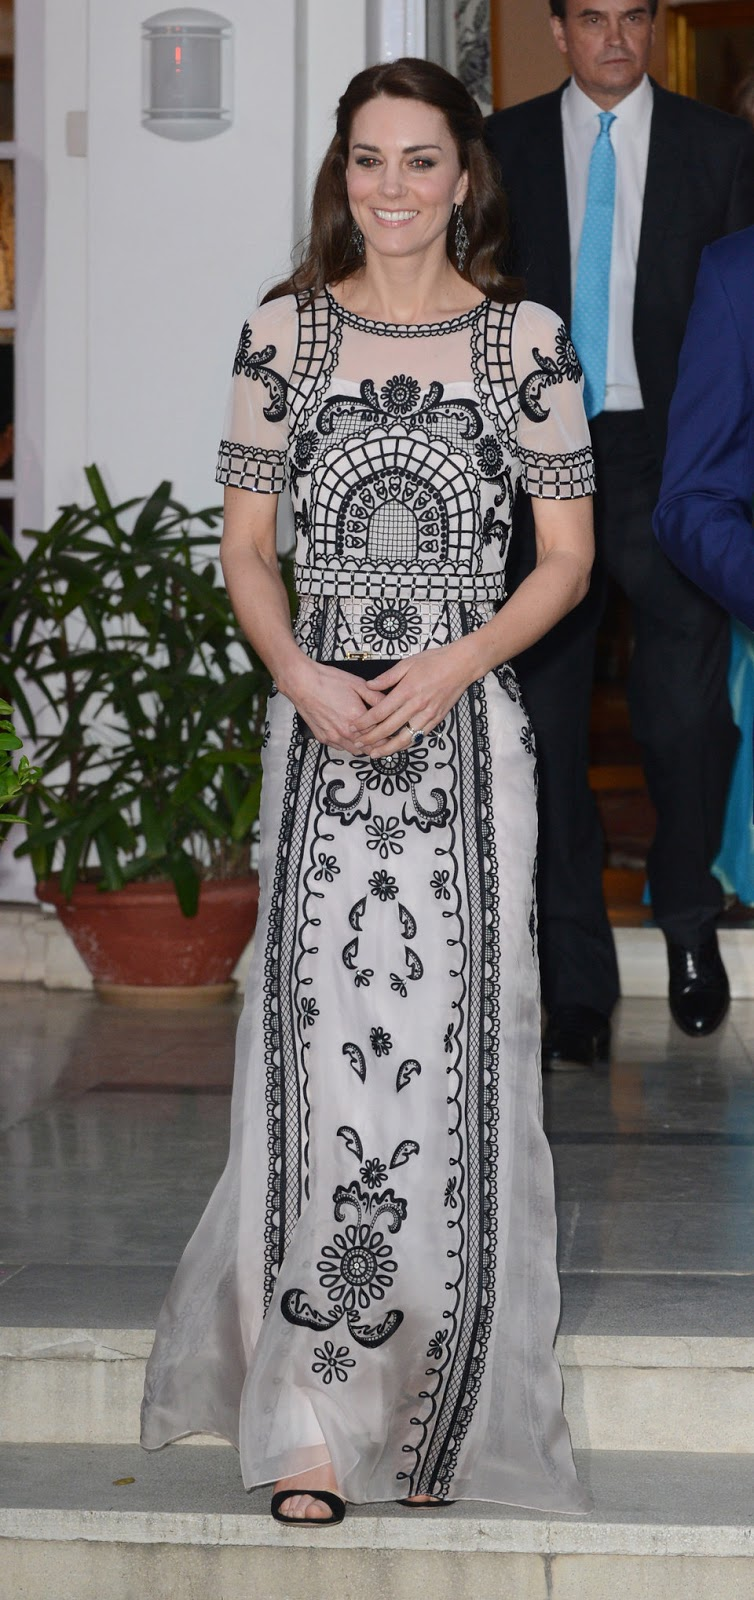 Kate Middleton opted for a £3000 Alice Temperley dress for Delhi Garden Party